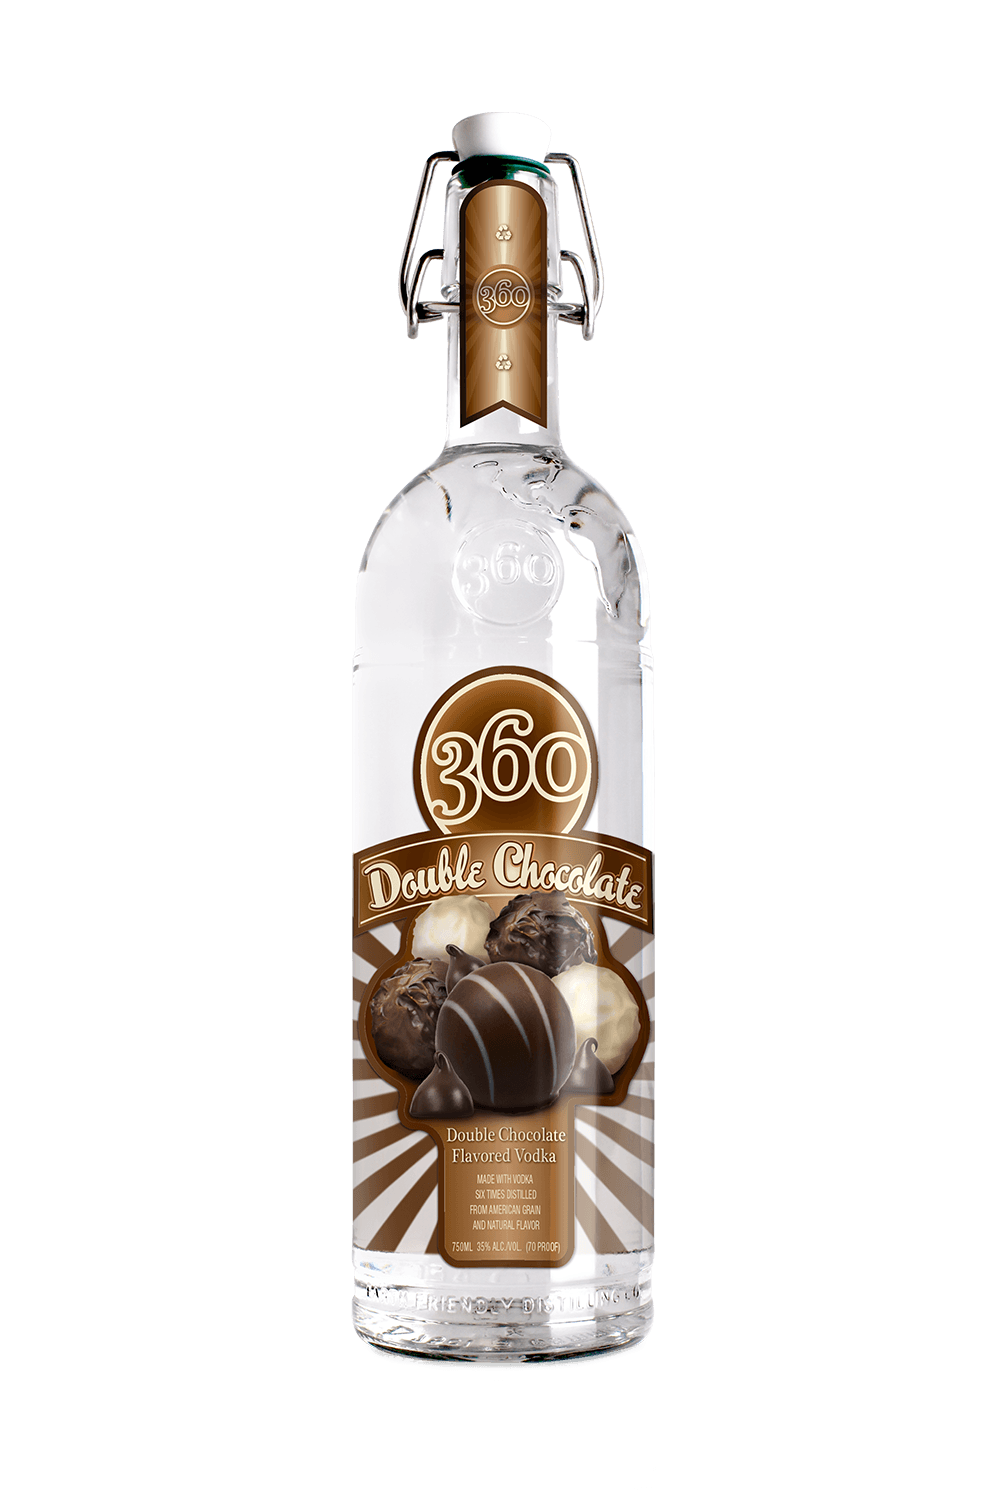 360 Double Chocolate Flavored Vodka